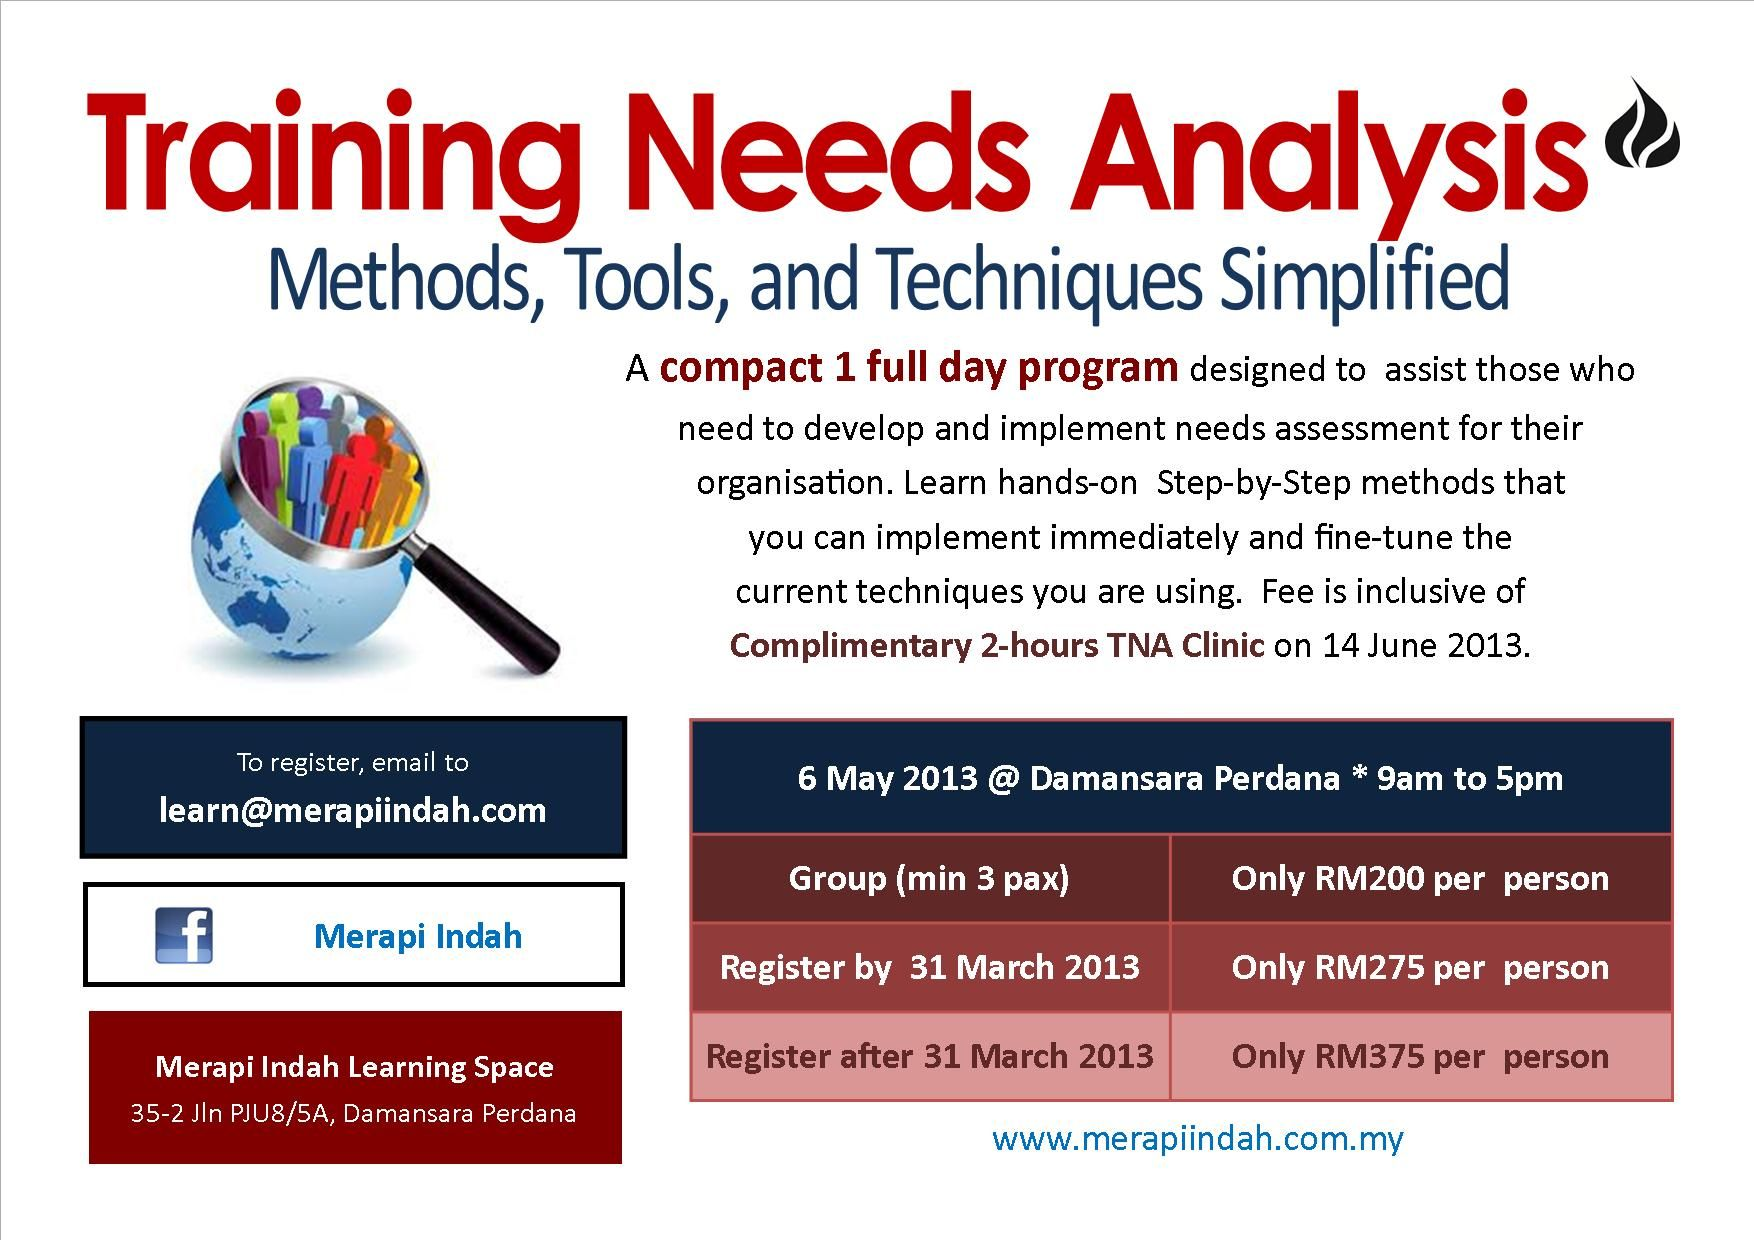 Training Needs Analysis Workshop At Damansara Perdana Petaling